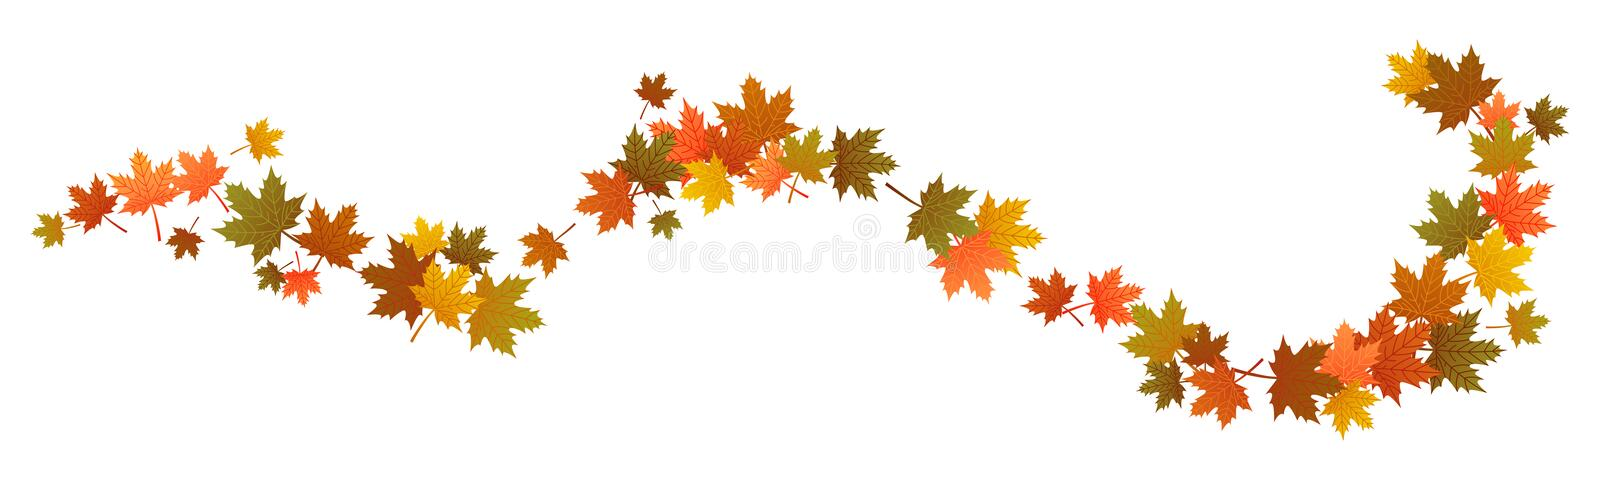 Autumn leaves in the wind, swirl, colorful foliage, maple, thanksgiving stock illustration